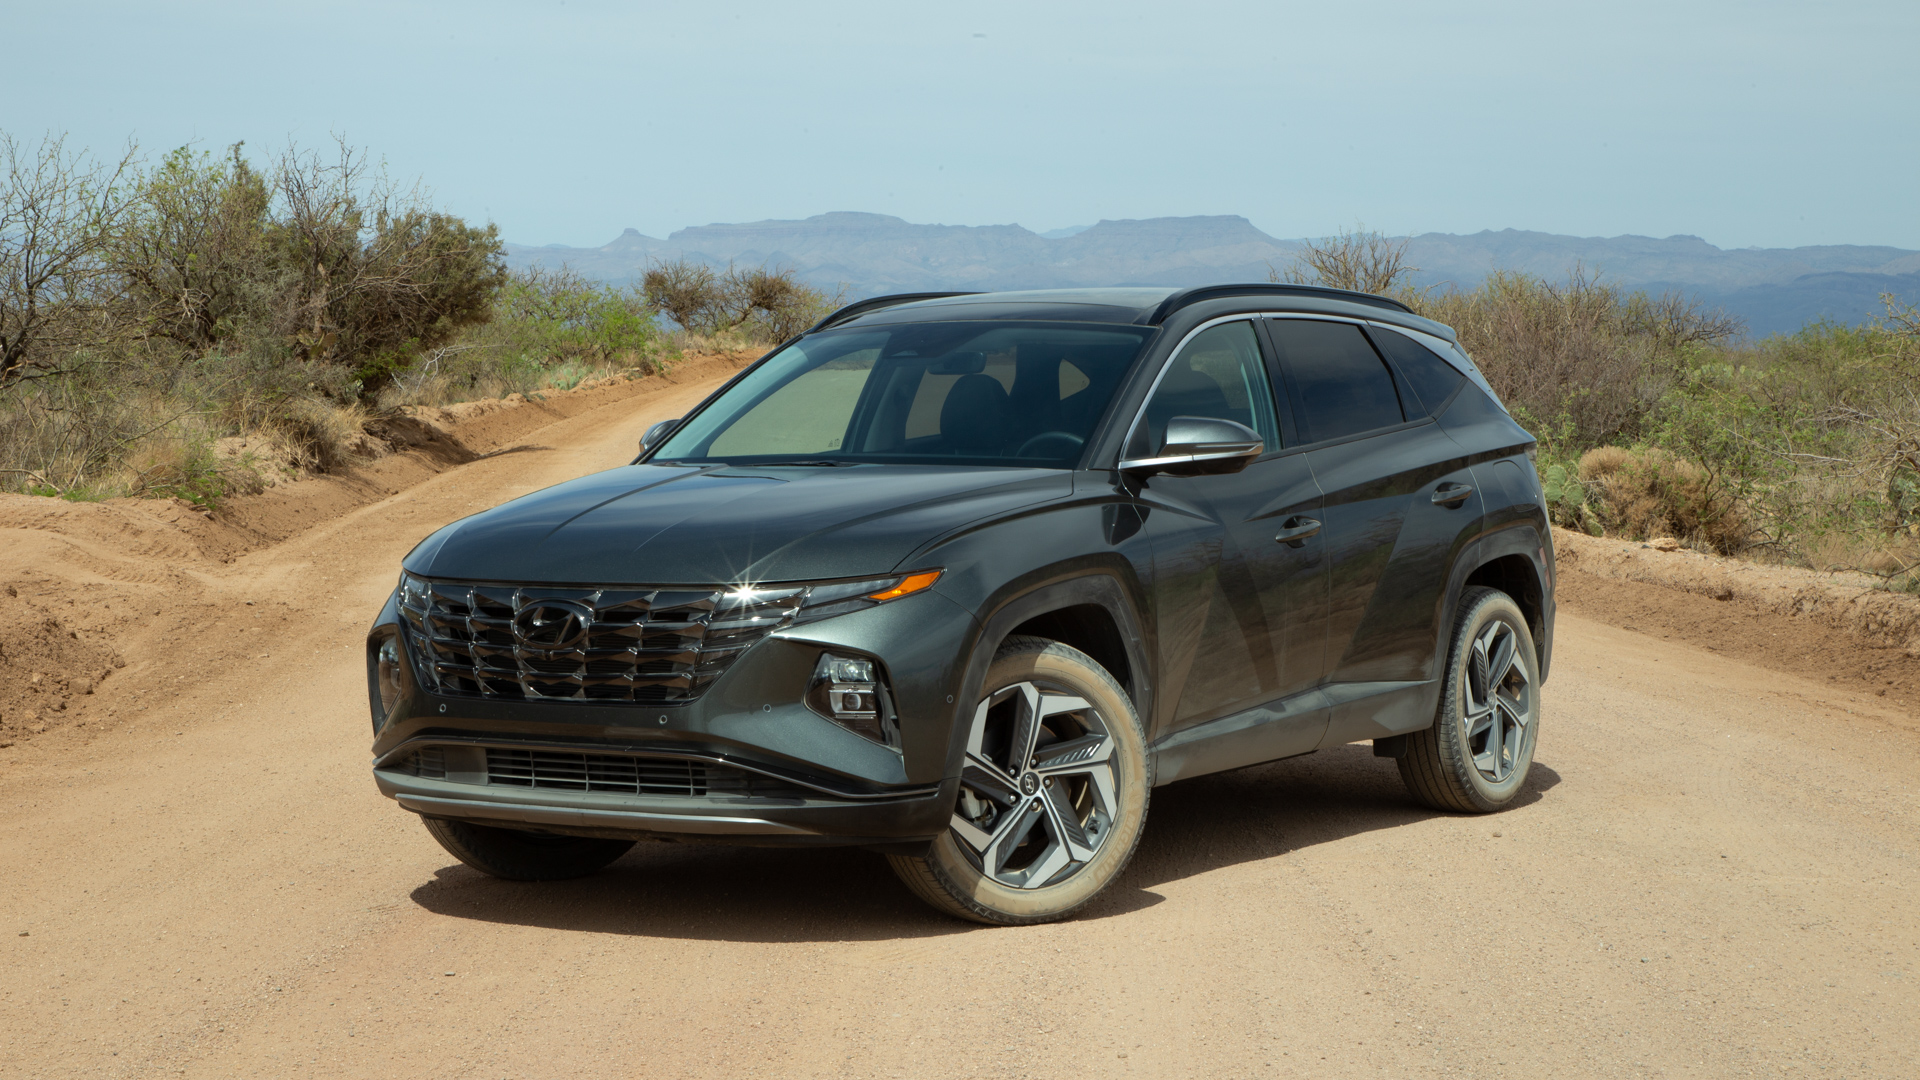 2022 Tucson Limited Engine, 2022 Hyundai Tucson Adds Electricity To Its Look And Powertrain Autobala